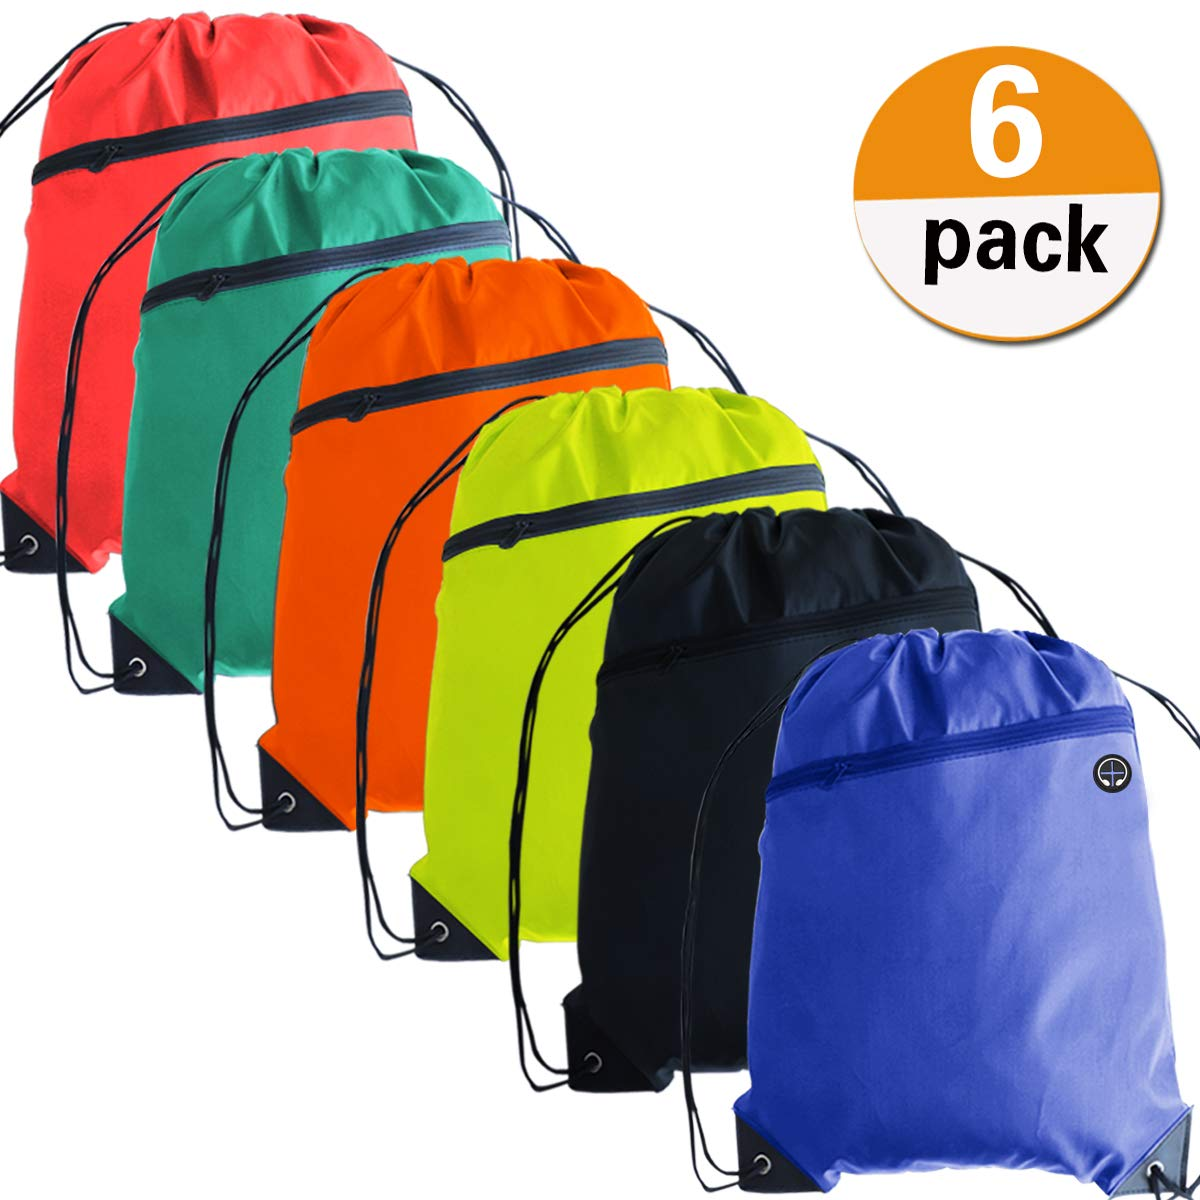 Youyuan 6 Colors Drawstring Backpack Sack Pack Large Size with Zipper Cinch Pack Tote Kids Adults Storage Bag for Gym Traveling